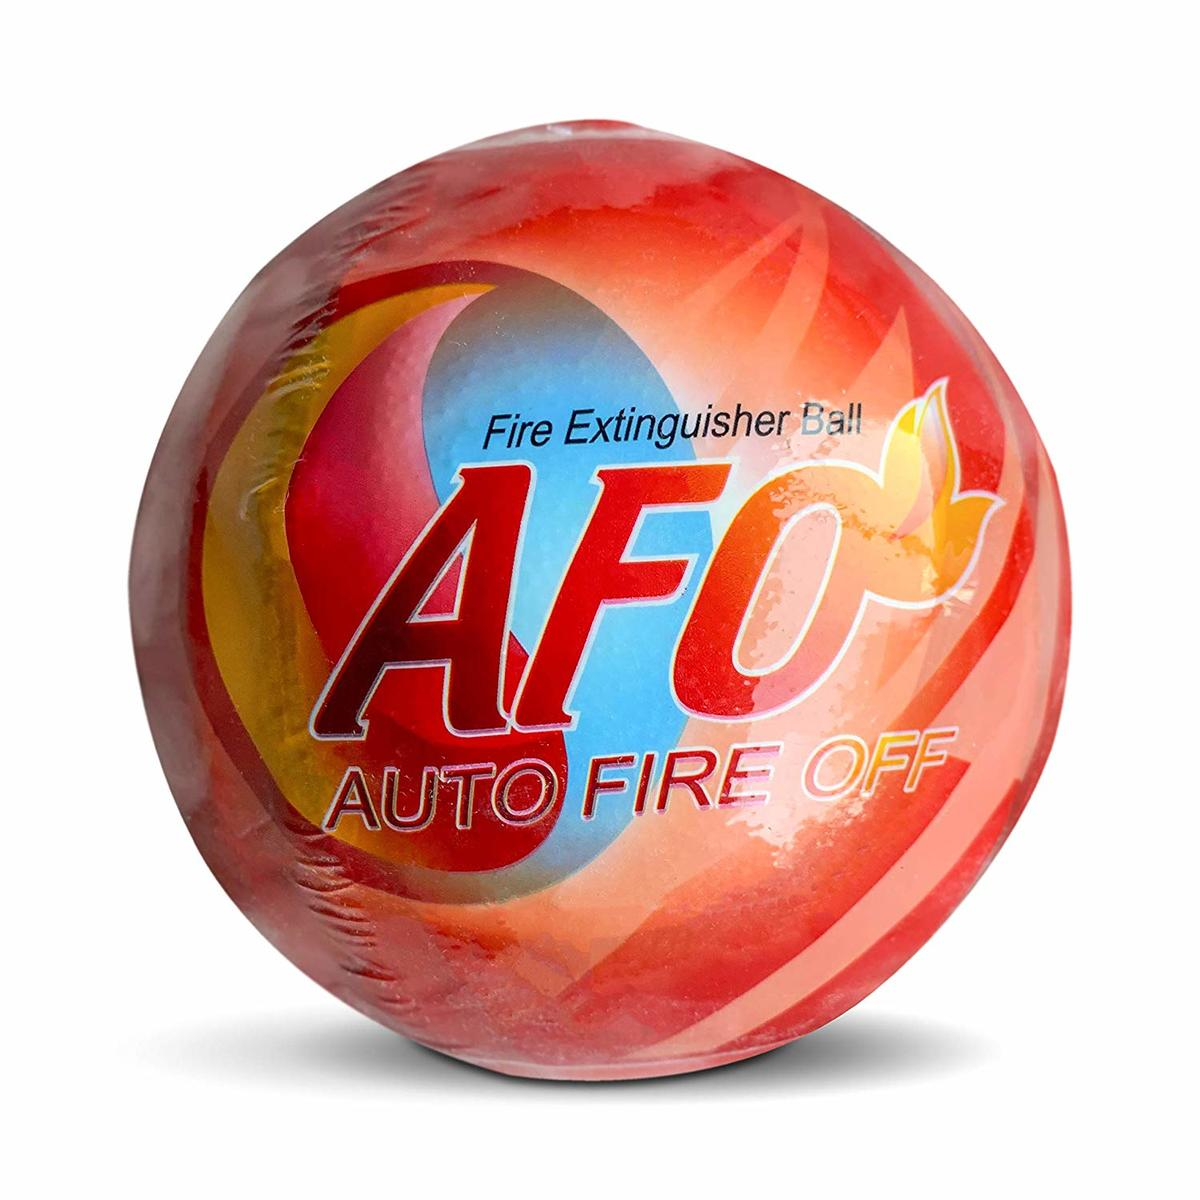 AFO - Self Actuated Fire Extinguisher Ball 1.3Kg